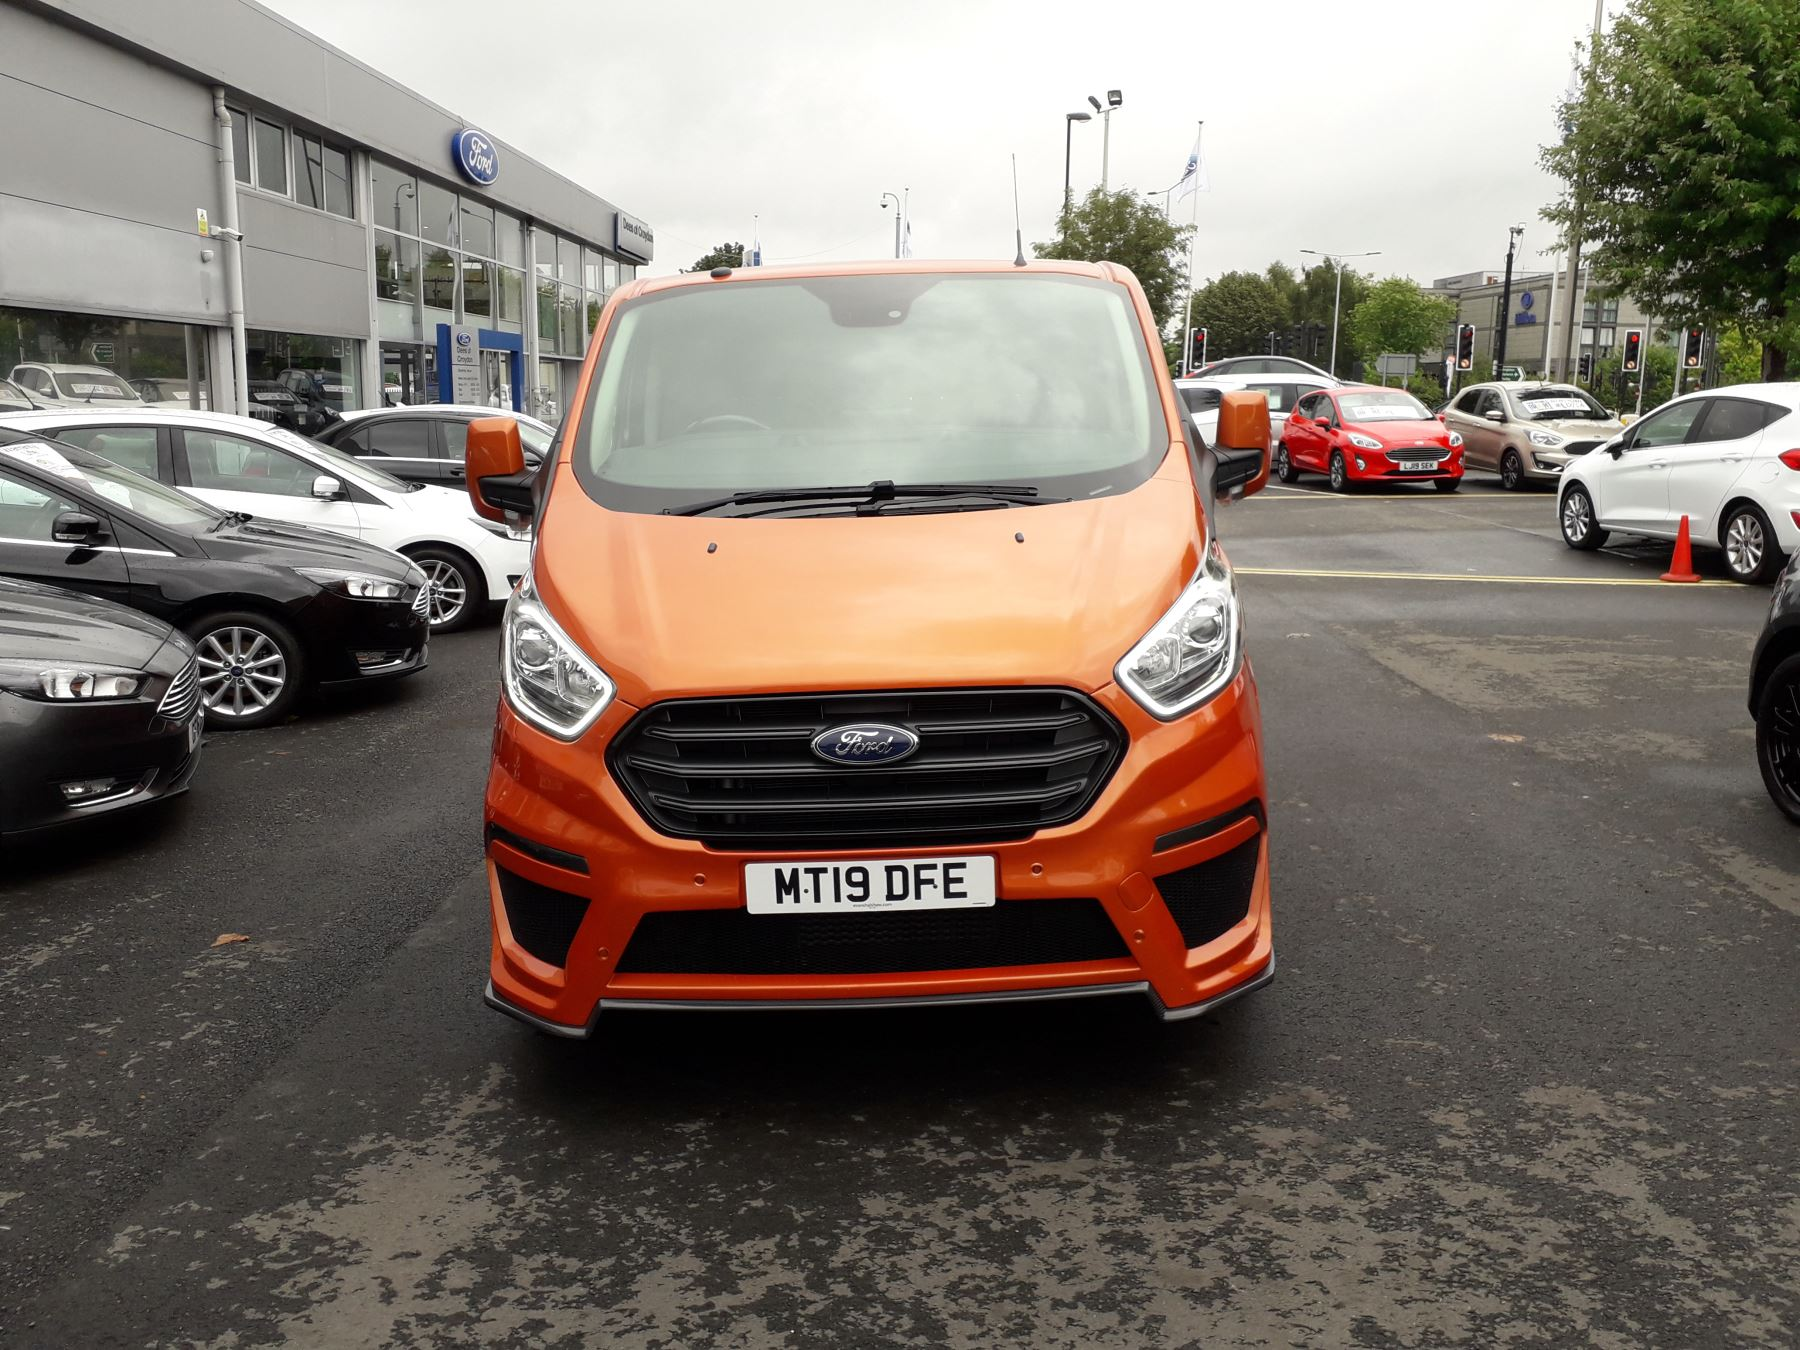 Ford Transit Custom 280 L1 Motion R 130PS Euro 6 image 2